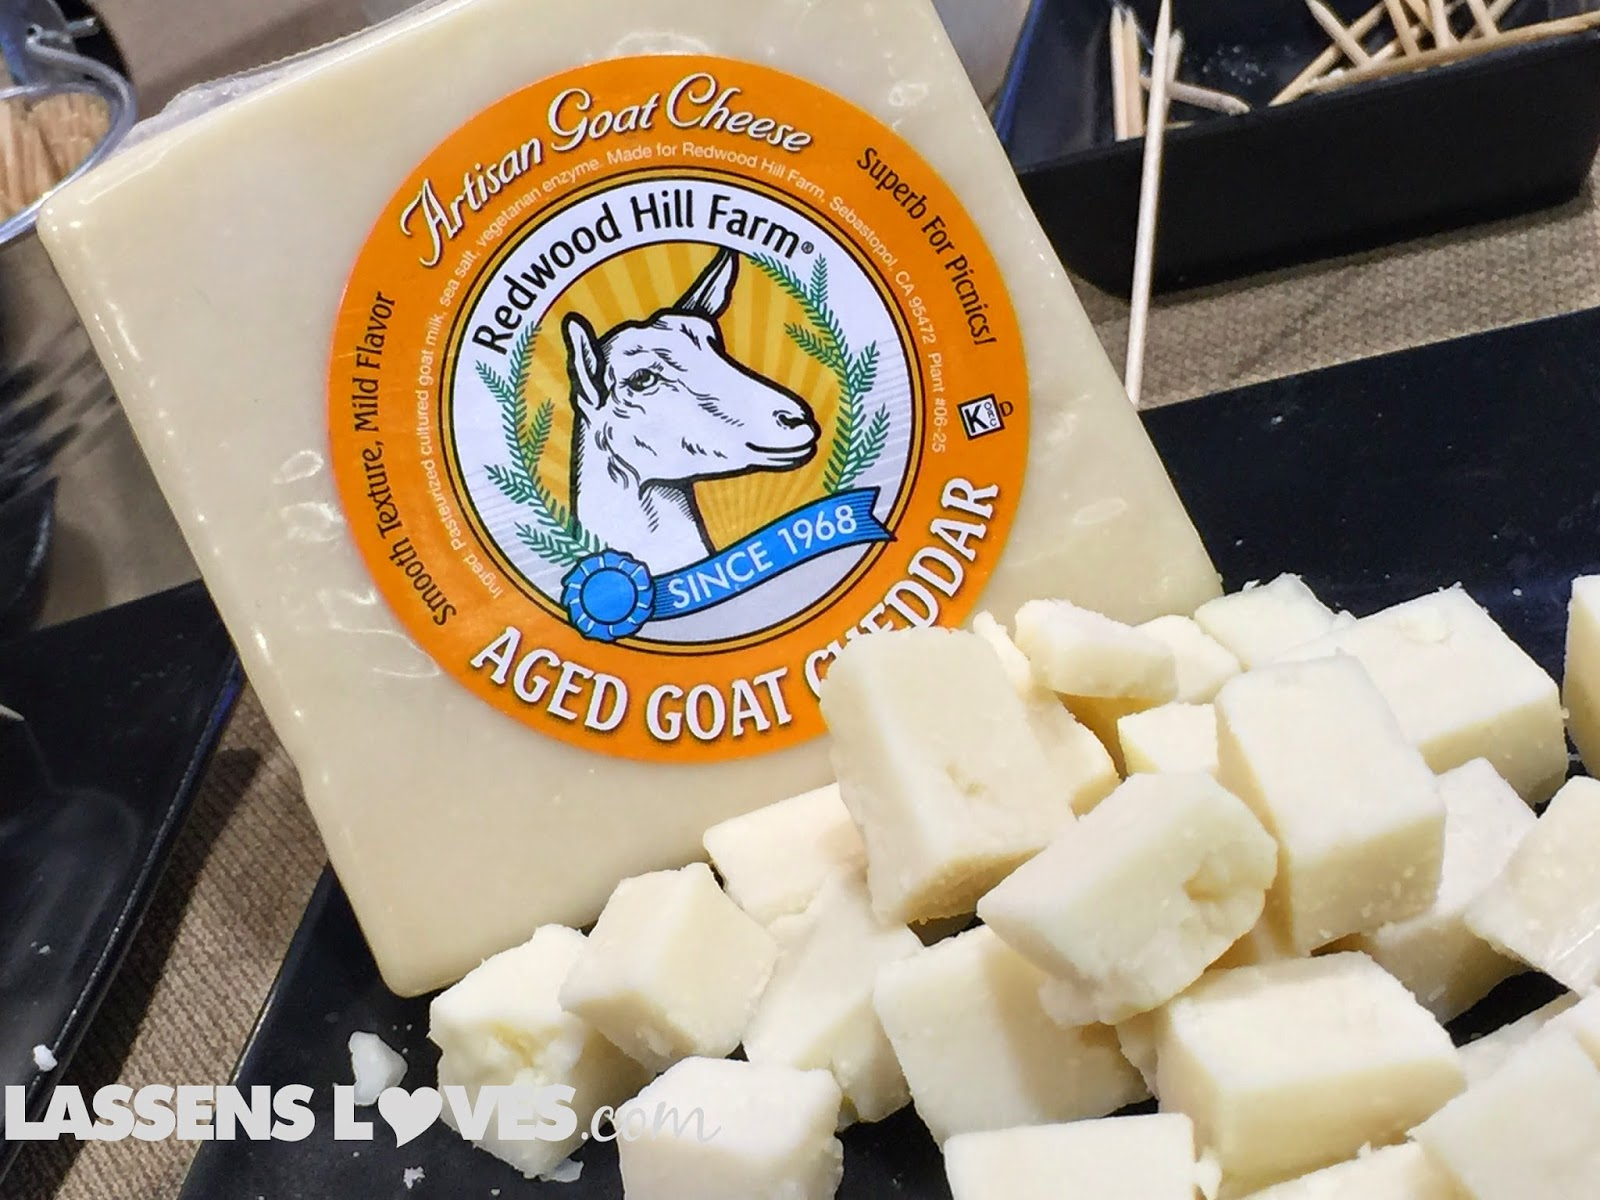 Expo+West+2015, Natural+Foods+Show, New+Natural+Products, Redwood+Hill+Farm+cheese, goat+cheese